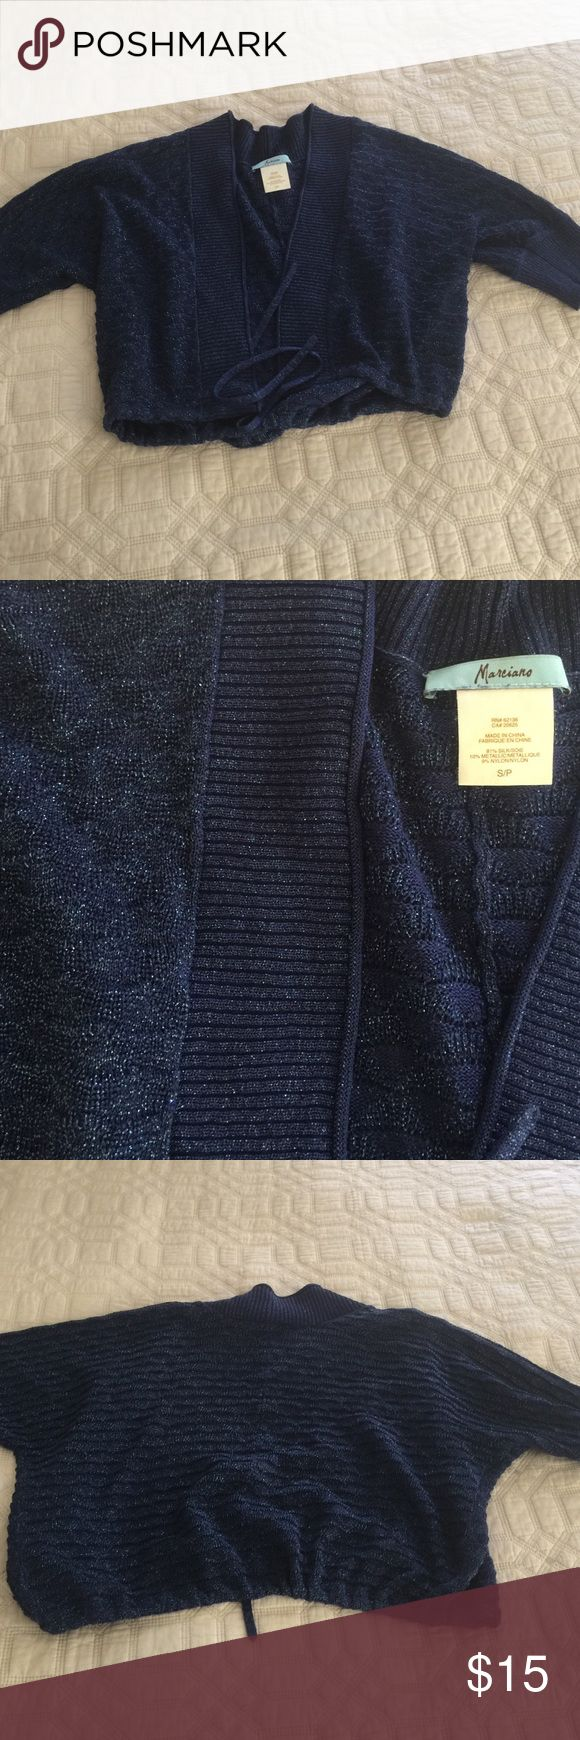 Guess by Marciano blue jacket cardigan Worn twice. I have had a ridiculous amount of compliments on this jacket. Like new condition Guess by Marciano Sweaters Cardigans